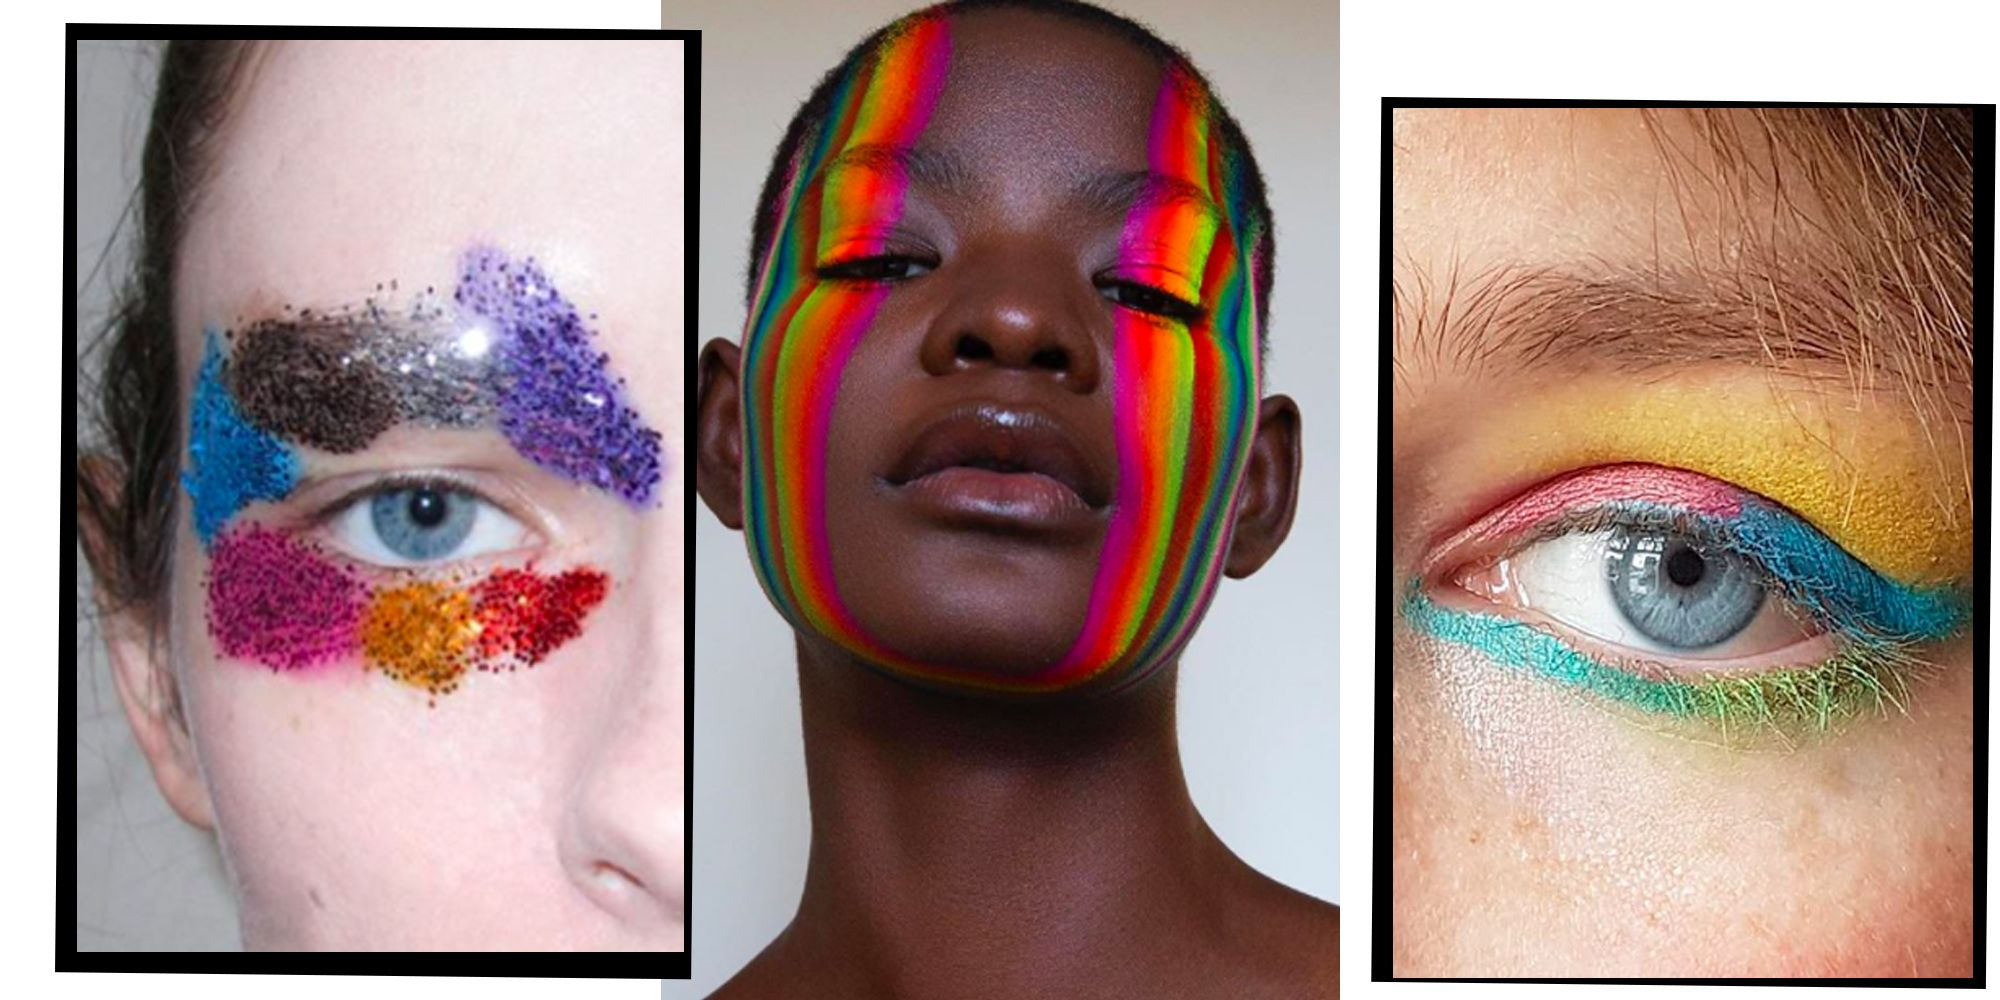 13 Rainbow Make Up Ideas So You Can Wear Your Love For Pride On Your Face